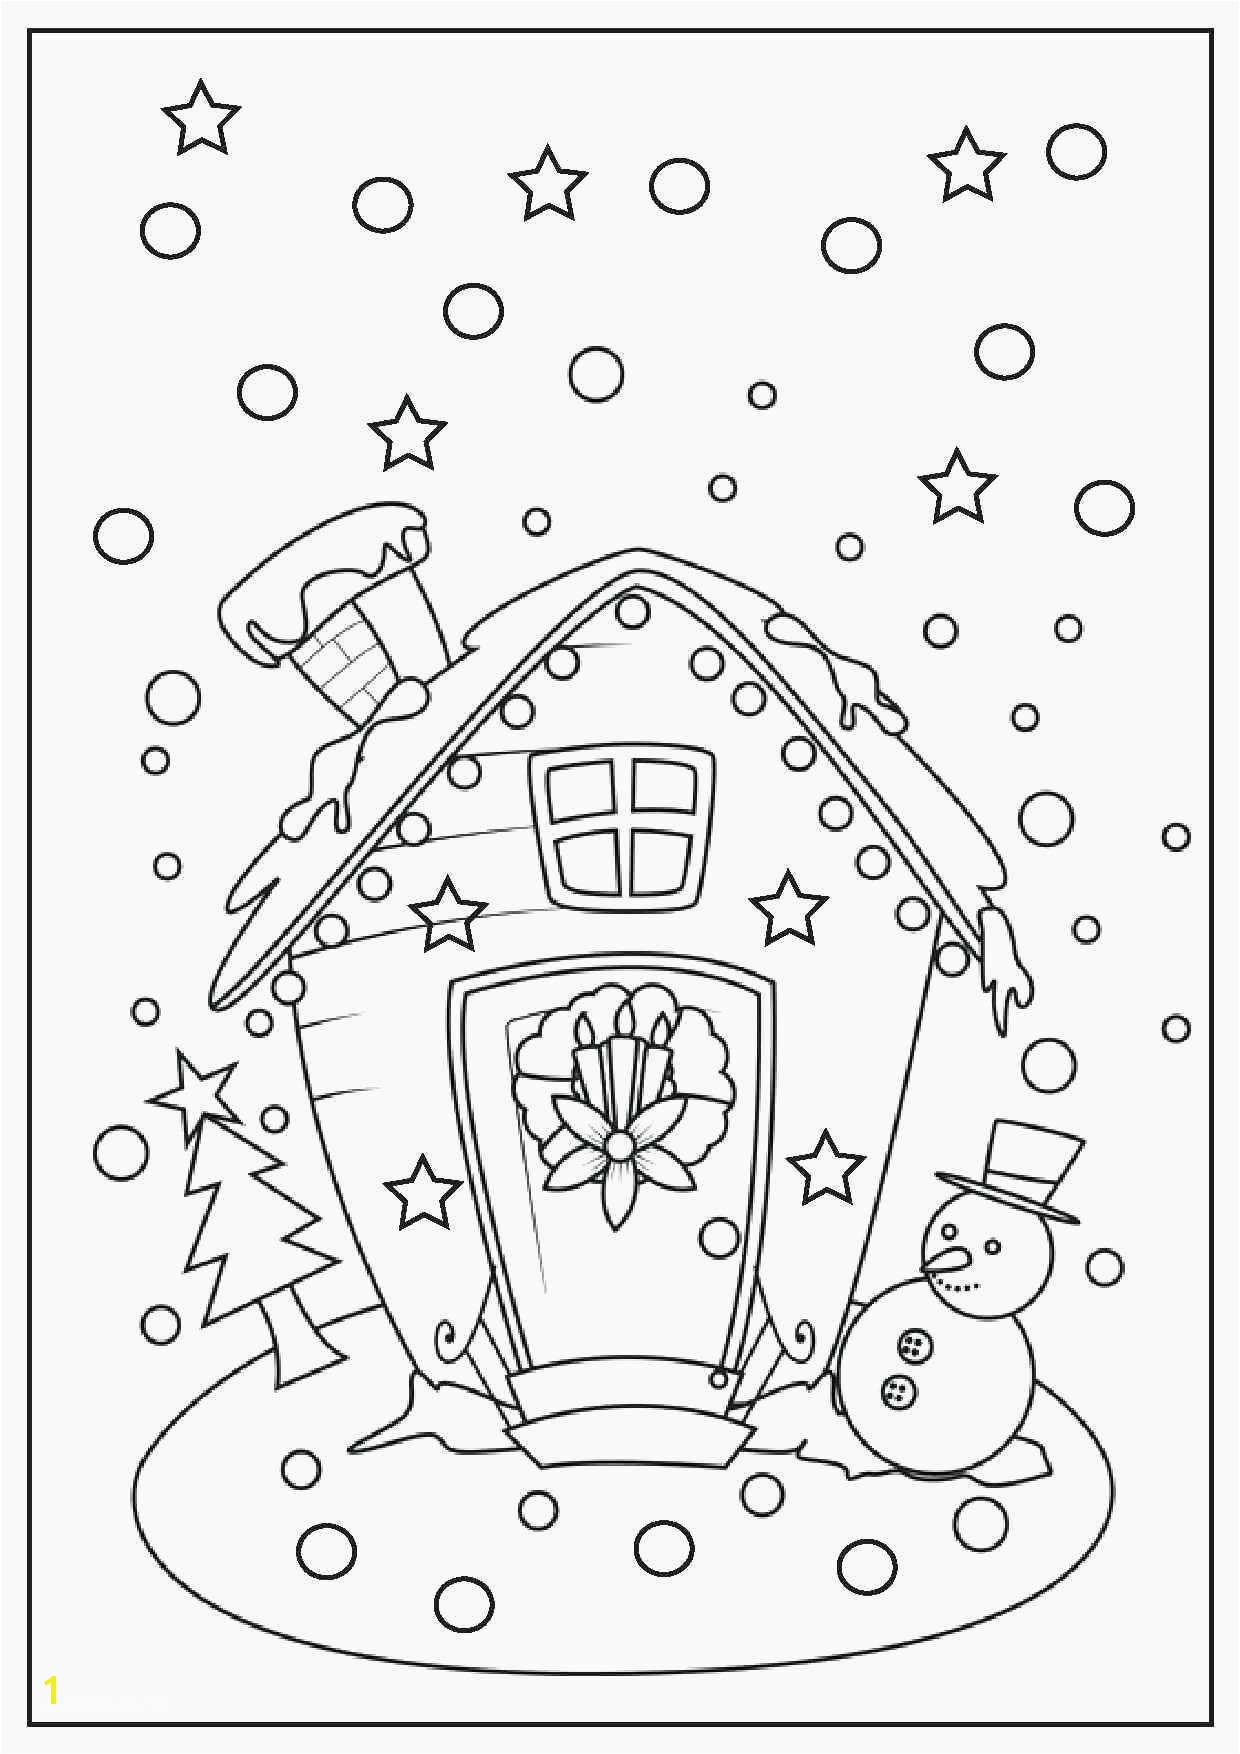 Christmas Balls Coloring Pages Delightful Outdoor Christmas Tree and Outdoor Christmas Tree